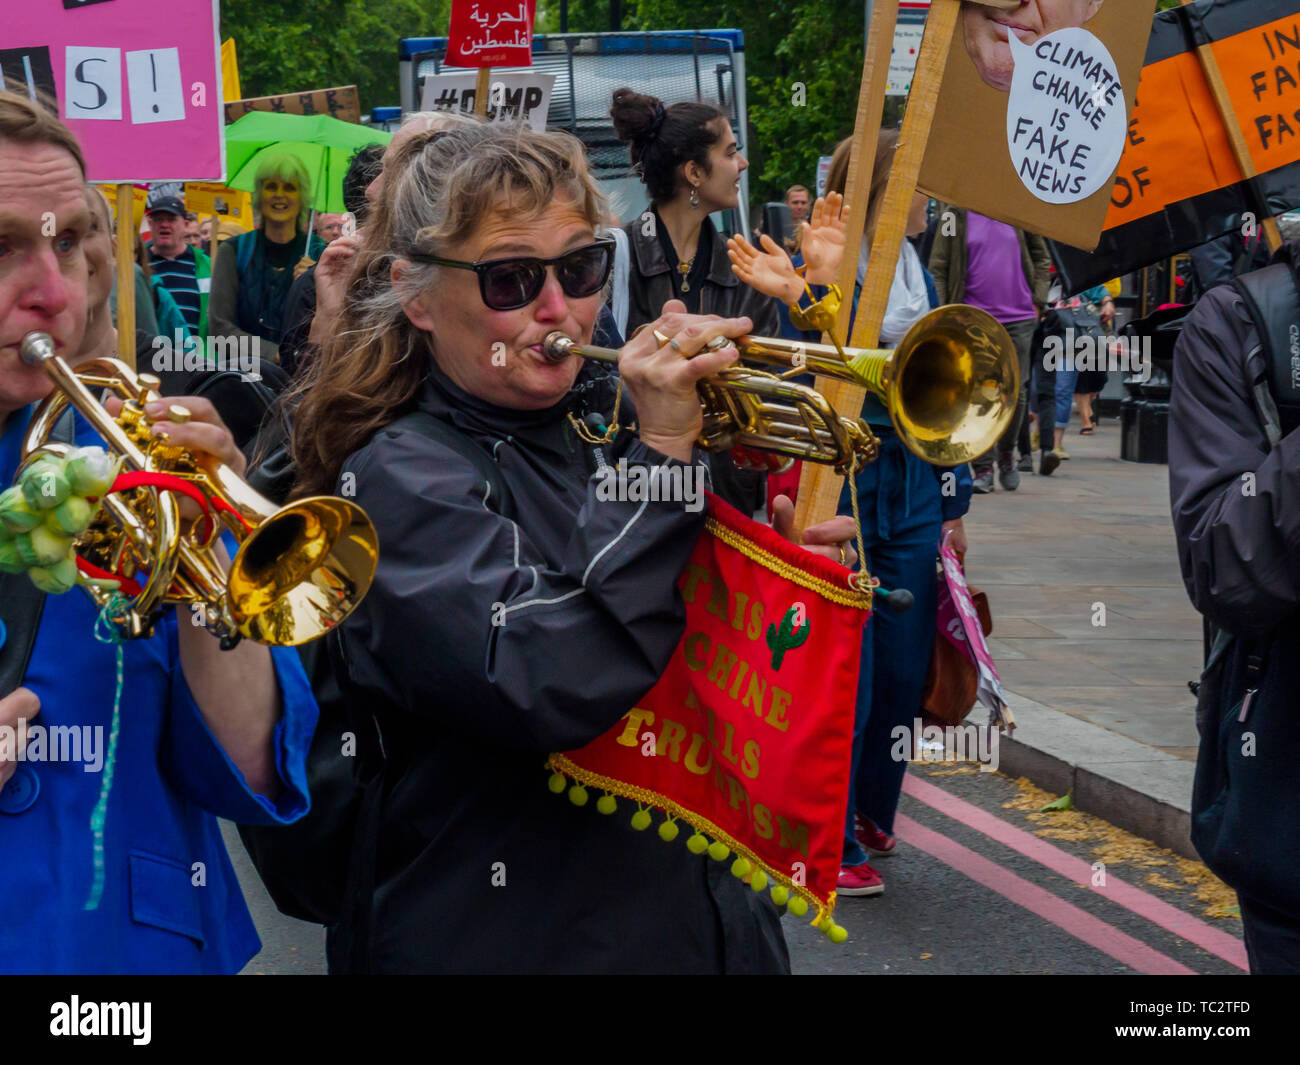 London, UK. Trumpeters on the march from the rally in Whitehall to Parliament Square for a further rally to send a clear message that President Trump is not welcome here because of his climate denial, racism, Islamophobia, misogyny and bigotry. His policies of hate and division have energised the far right around the world. 4th June, 2019. Peter Marshall IMAGESLIVE Credit: Peter Marshall/IMAGESLIVE/ZUMA Wire/Alamy Live News Stock Photo